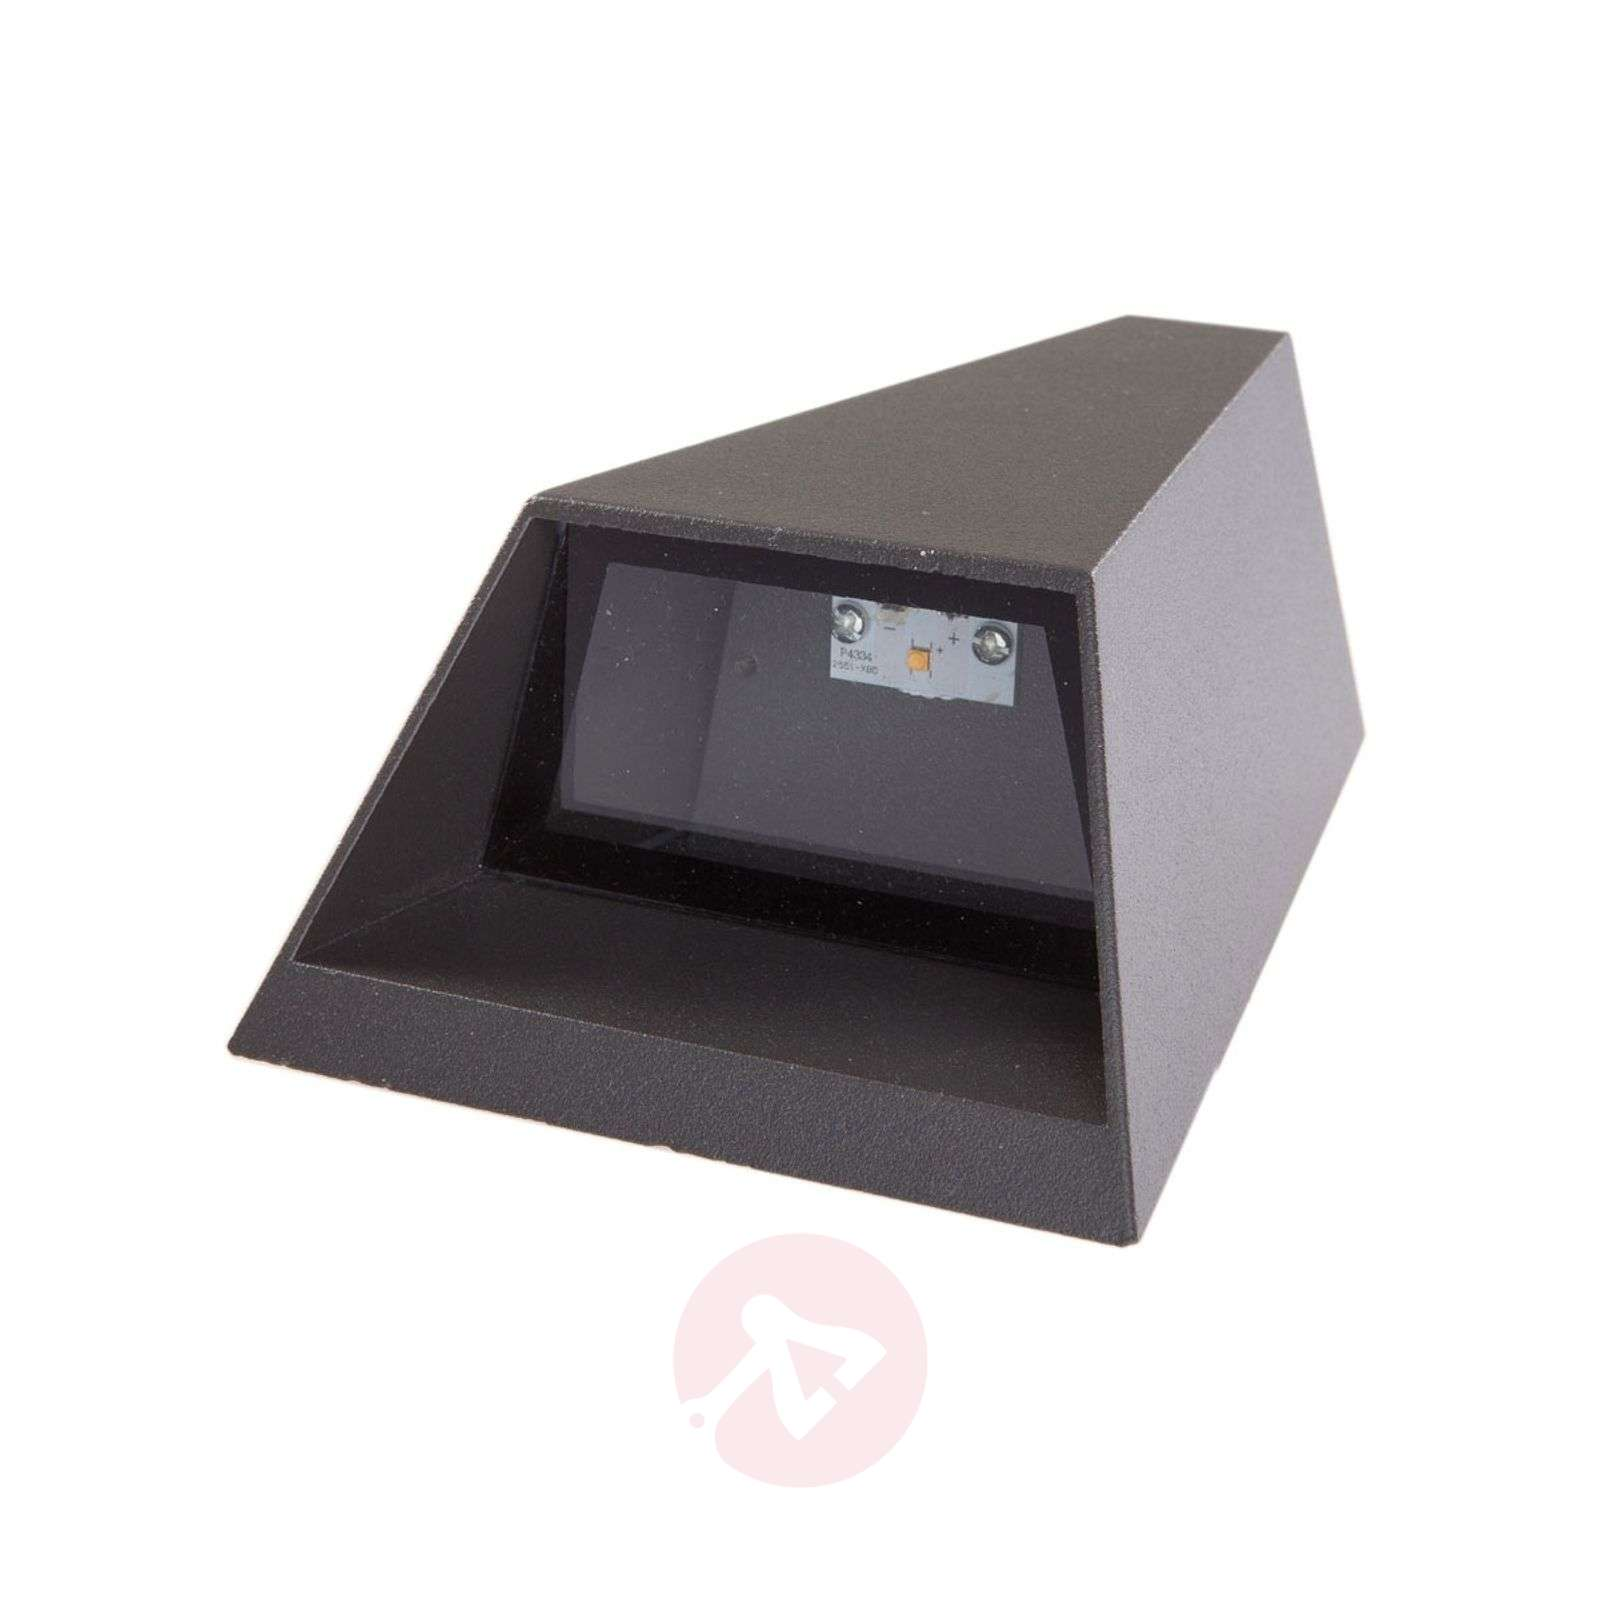 Double shining LED outdoor wall light Jendrik-9616004-01